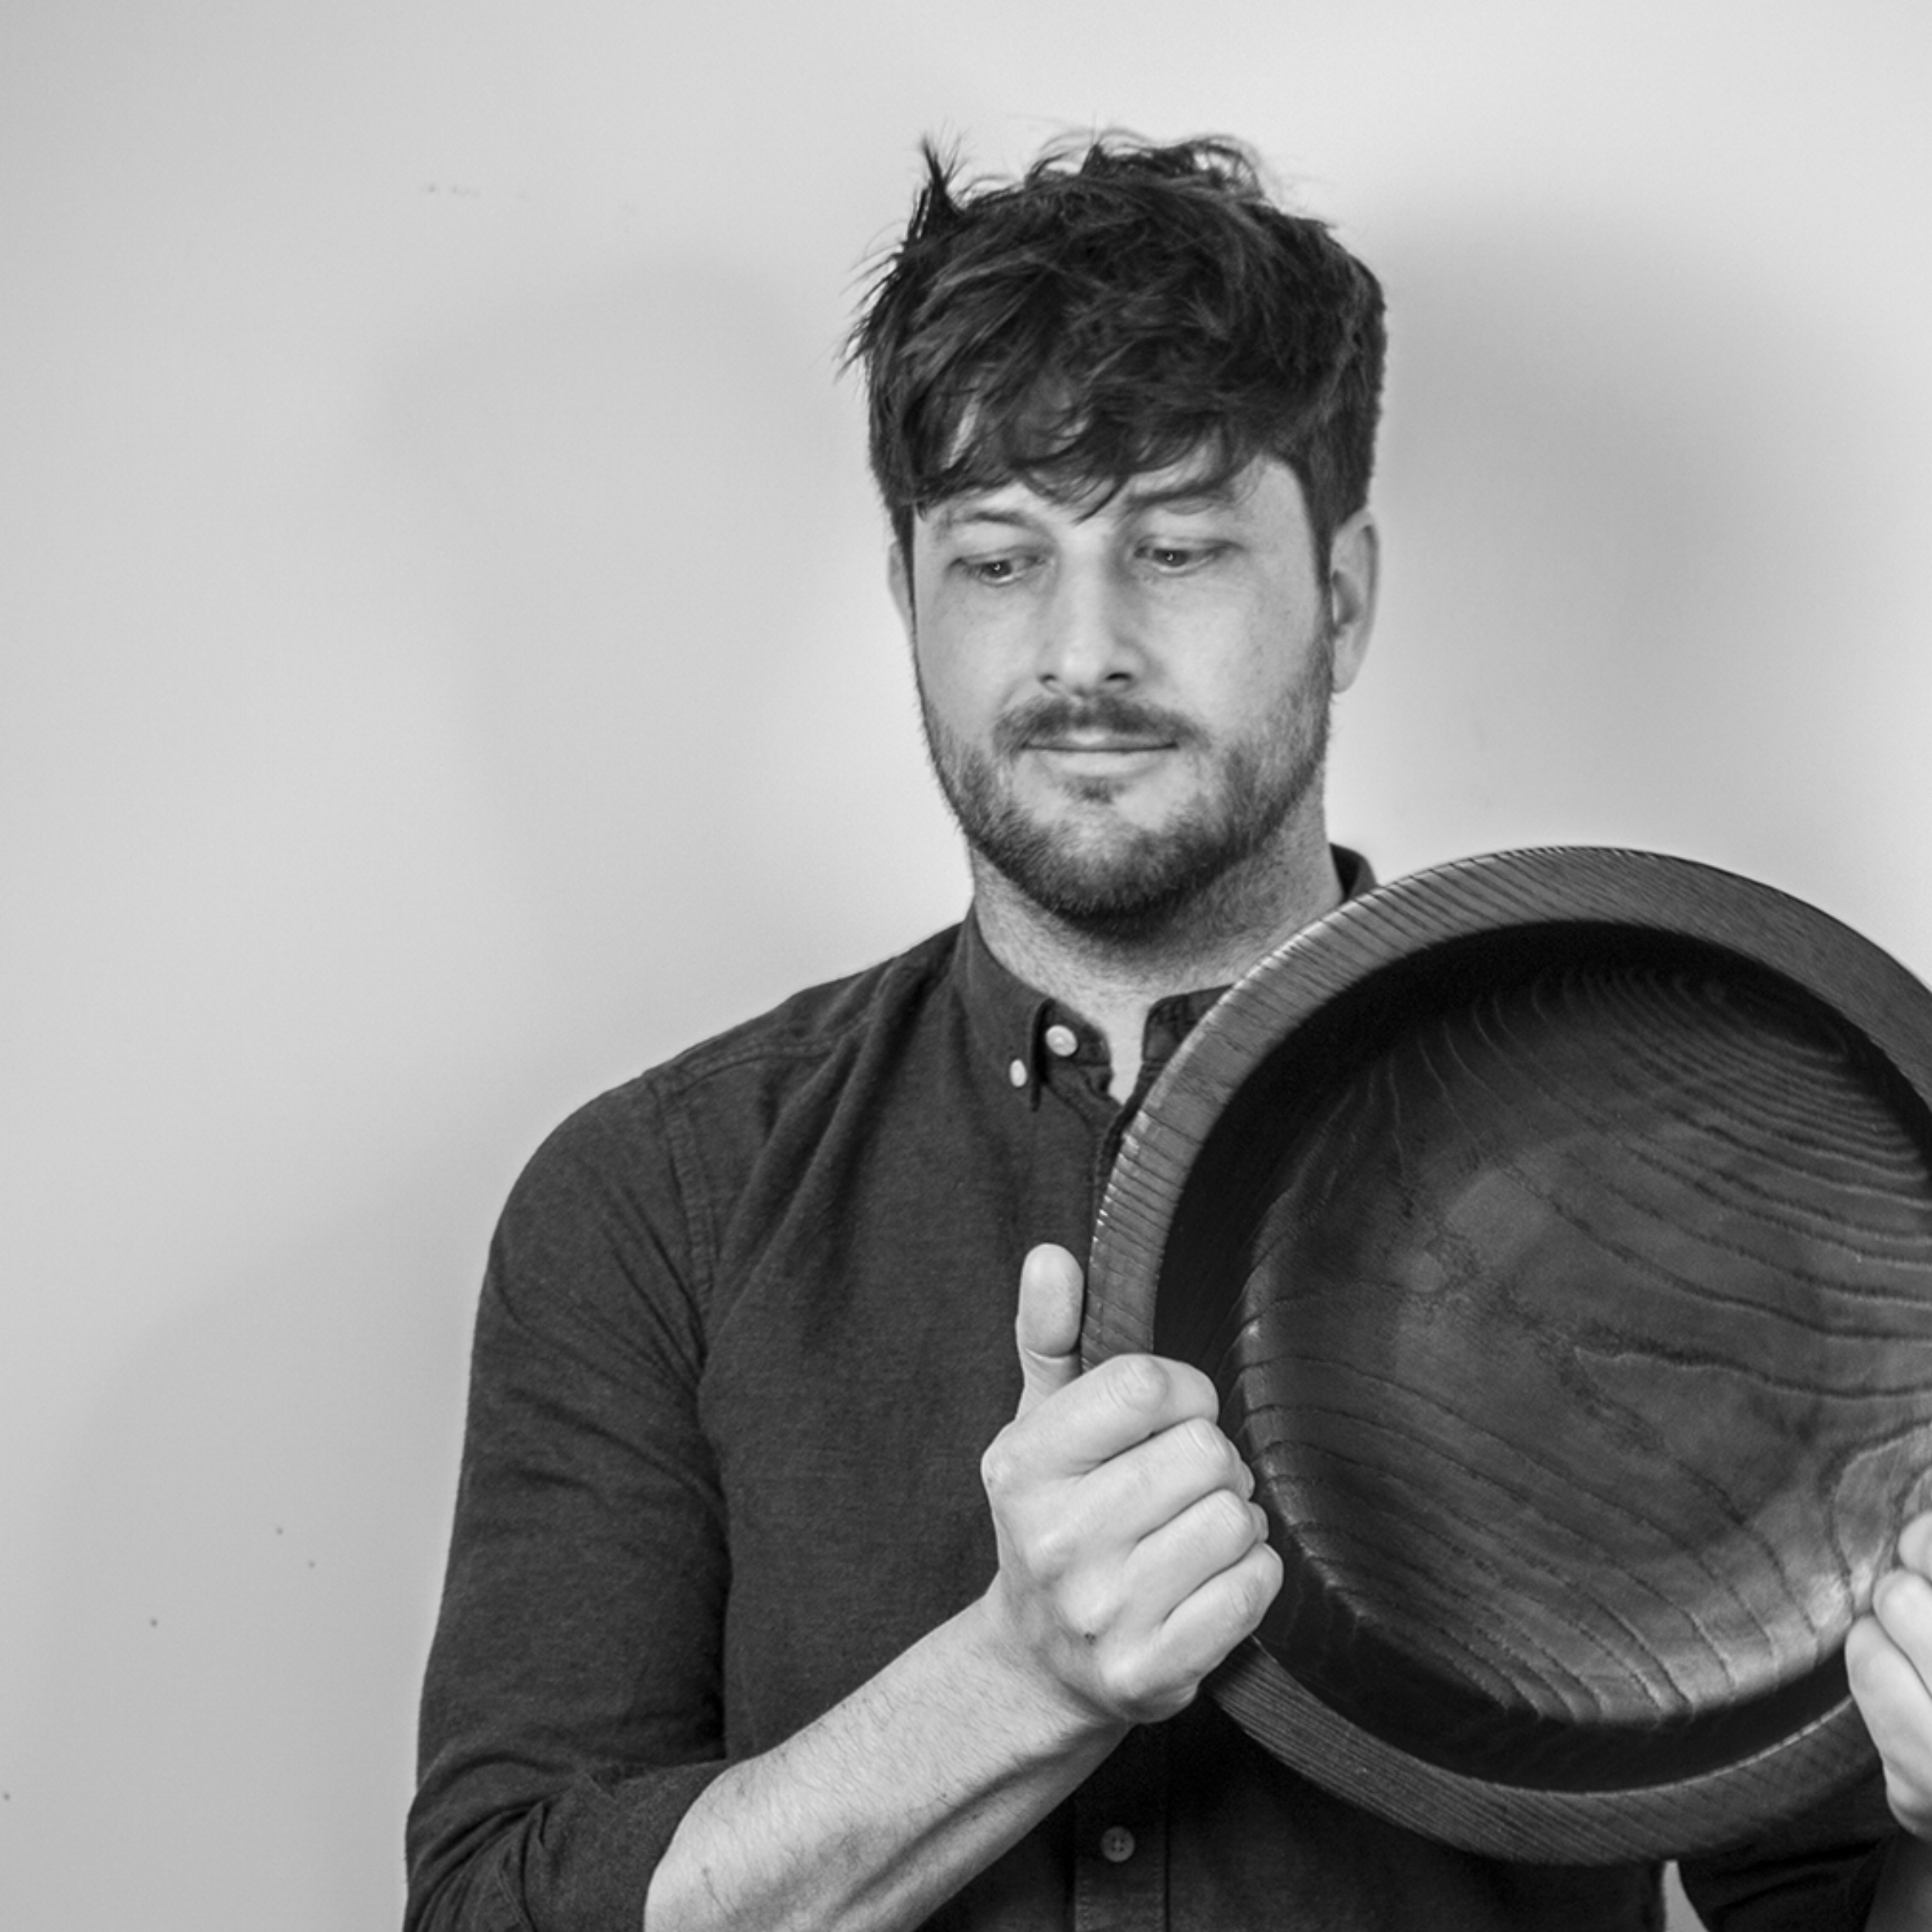 """Alex Carpenter - Working with LLL since 2018   Alex has worked as a designer and maker for over 10 years, developing homewares for national retailers but took a step away from the mass produced and into a re-connection with product by making once again. He works mainly with timbers which are locally sourced from the Devon landscape and combines traditional and modern craft techniques with contemporary design and a playfulness of form, texture and attention to detail.   Look Like Love Asks….    Whose work are you most inspired by?  - Right now it's Pat Kim; the playful and strong forms and bold finishes are super pleasing.   What is your favourite time of the day to get inspired?  - Whenever """"that"""" idea you've been striving for just pops into your head when you least expect it; which more often than not, is not even when you're trying to think about it.   Best snack for studio days?  - Coconut water and organic crunchy peanut butter with banana on a cracker; a proper energy booster!"""